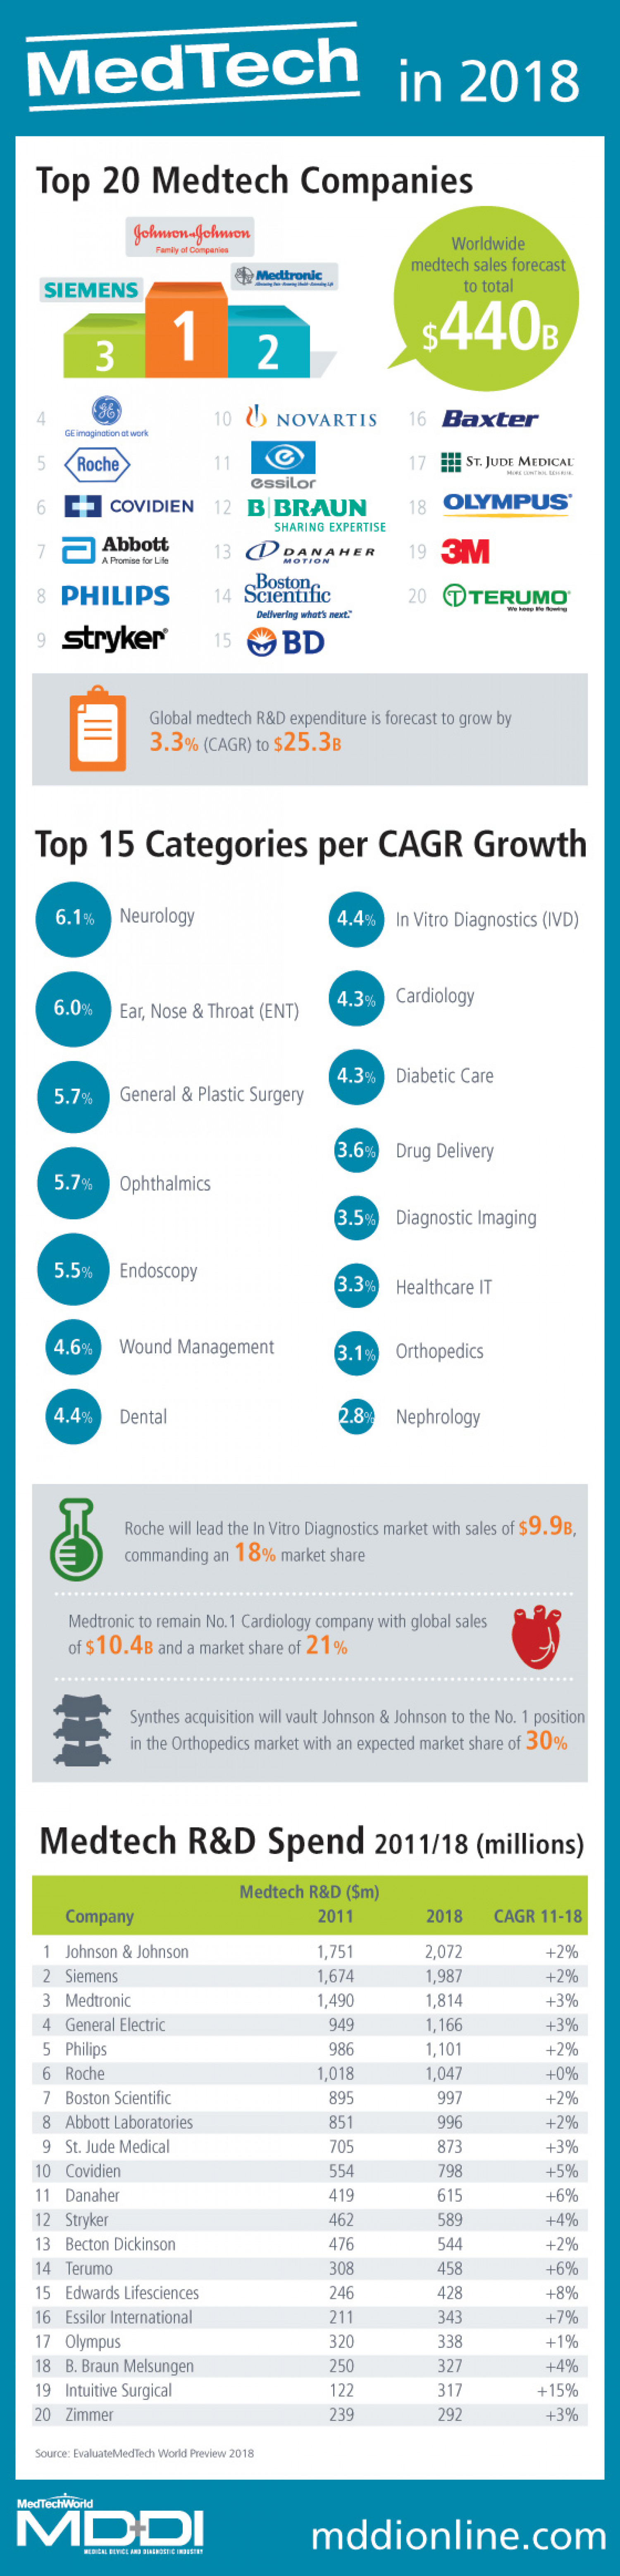 MedTech in 2018 Infographic